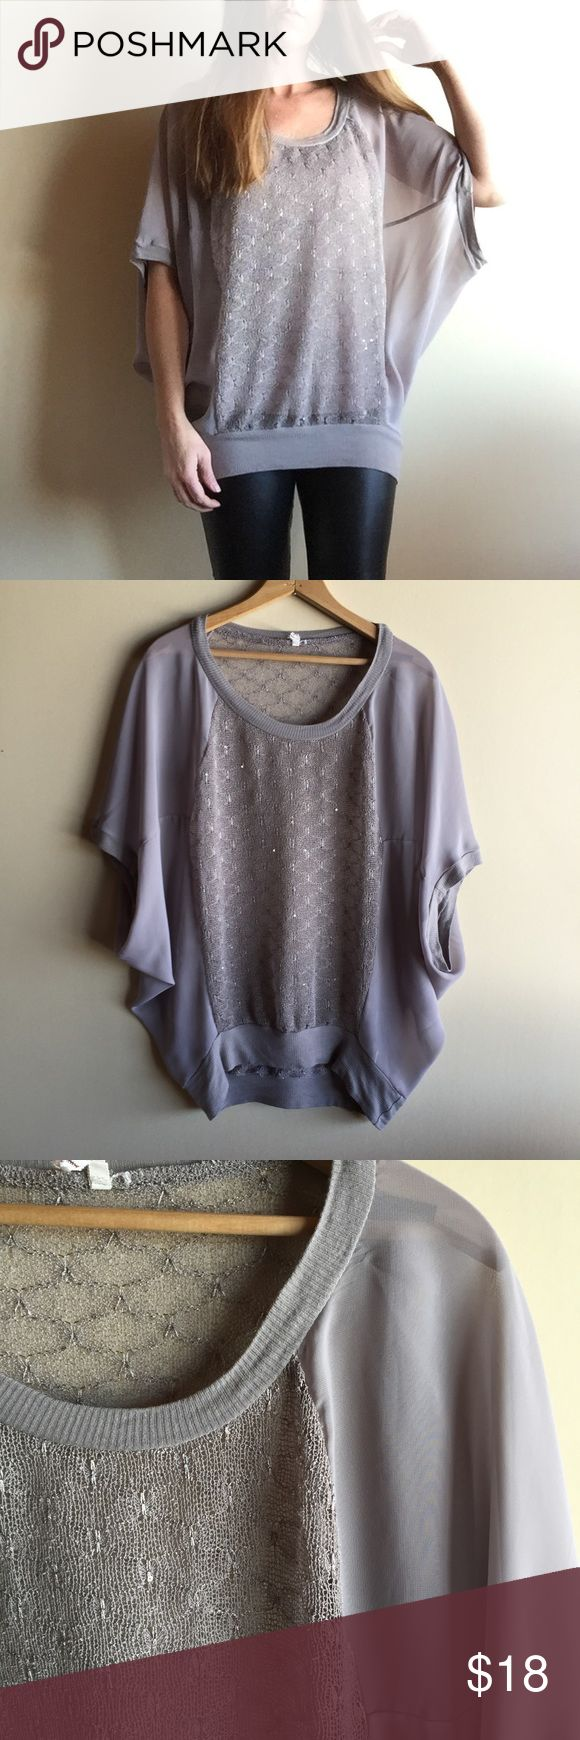 "Willow and Clay batwing sheer top Batwing top with knit portion that has a subtle sparkle. Taupe grey color. Great condition! I am 5'7"" for fit reference. Willow & Clay Tops"